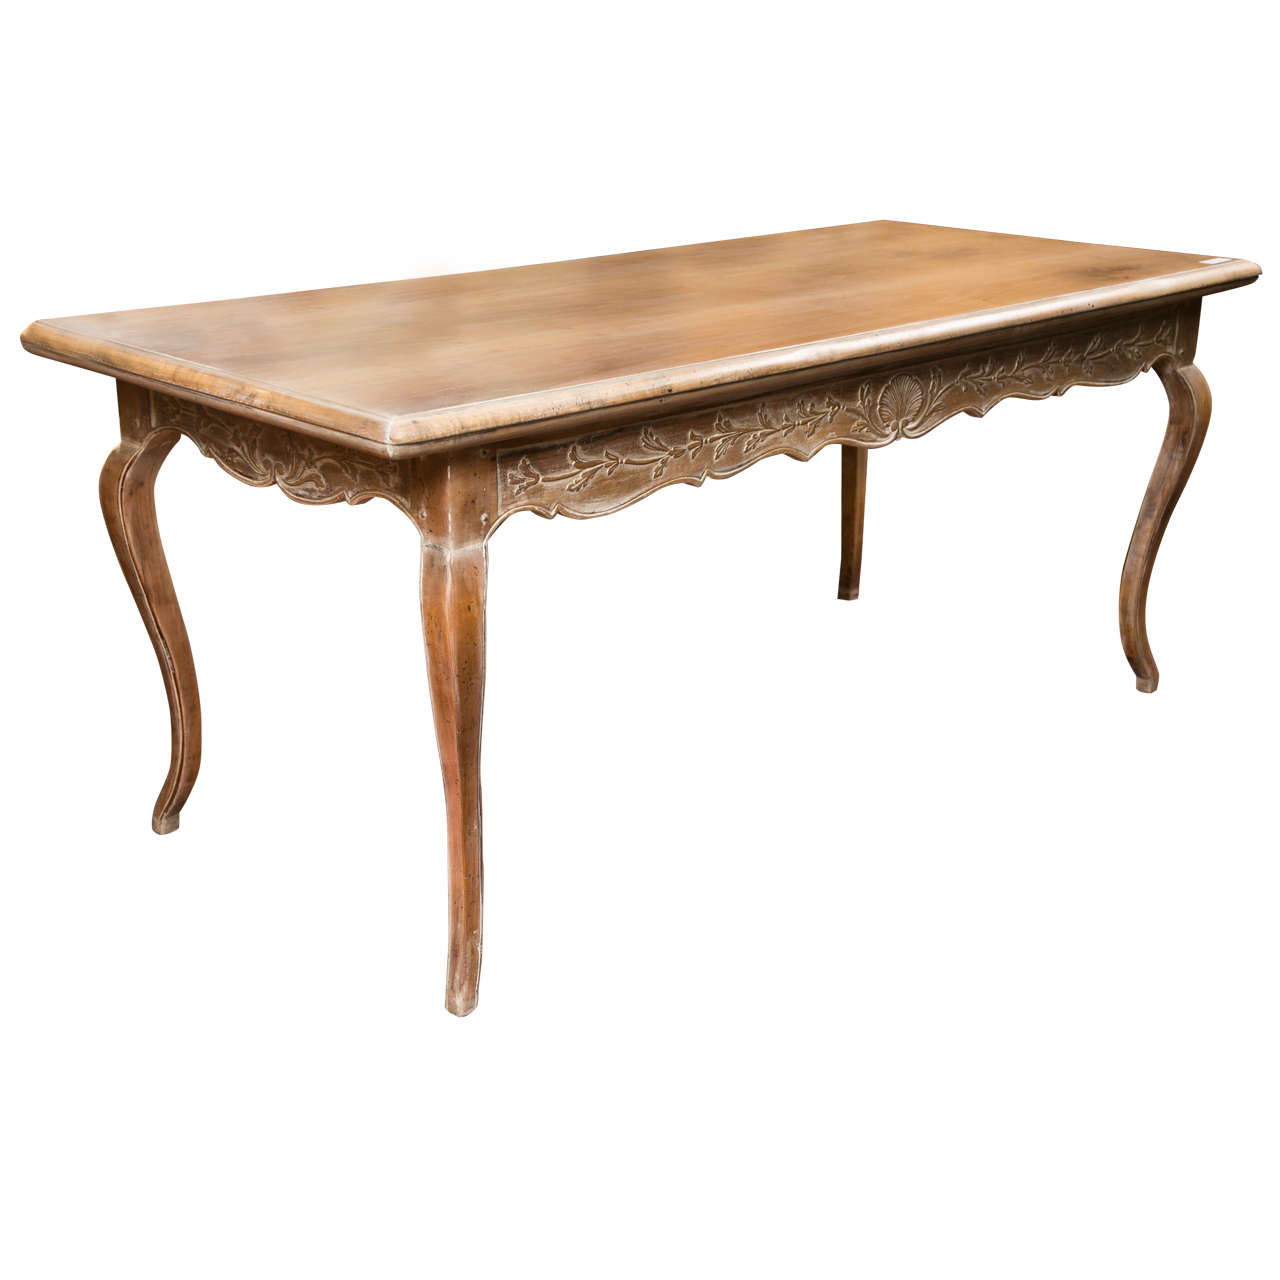 French provincial style dining table for sale at 1stdibs for Dining room table styles